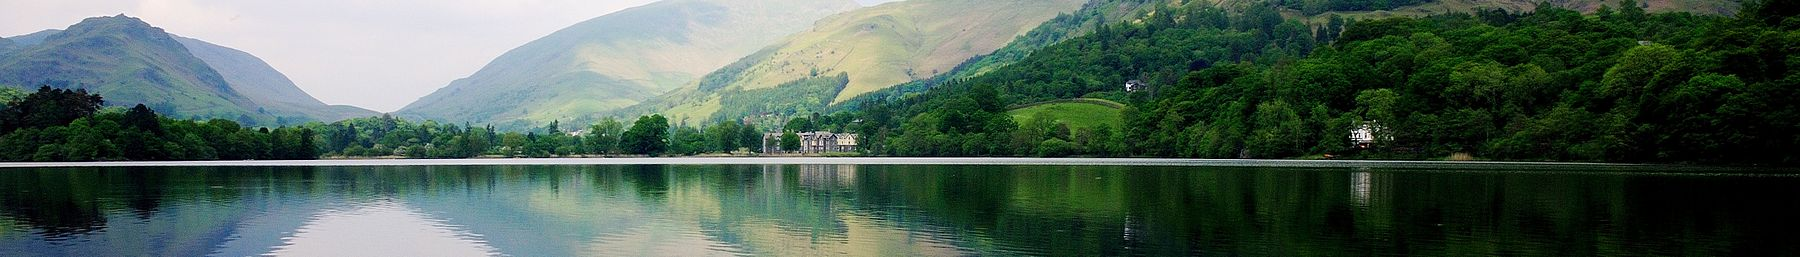 Grasmere in the Lake District, Cumbria